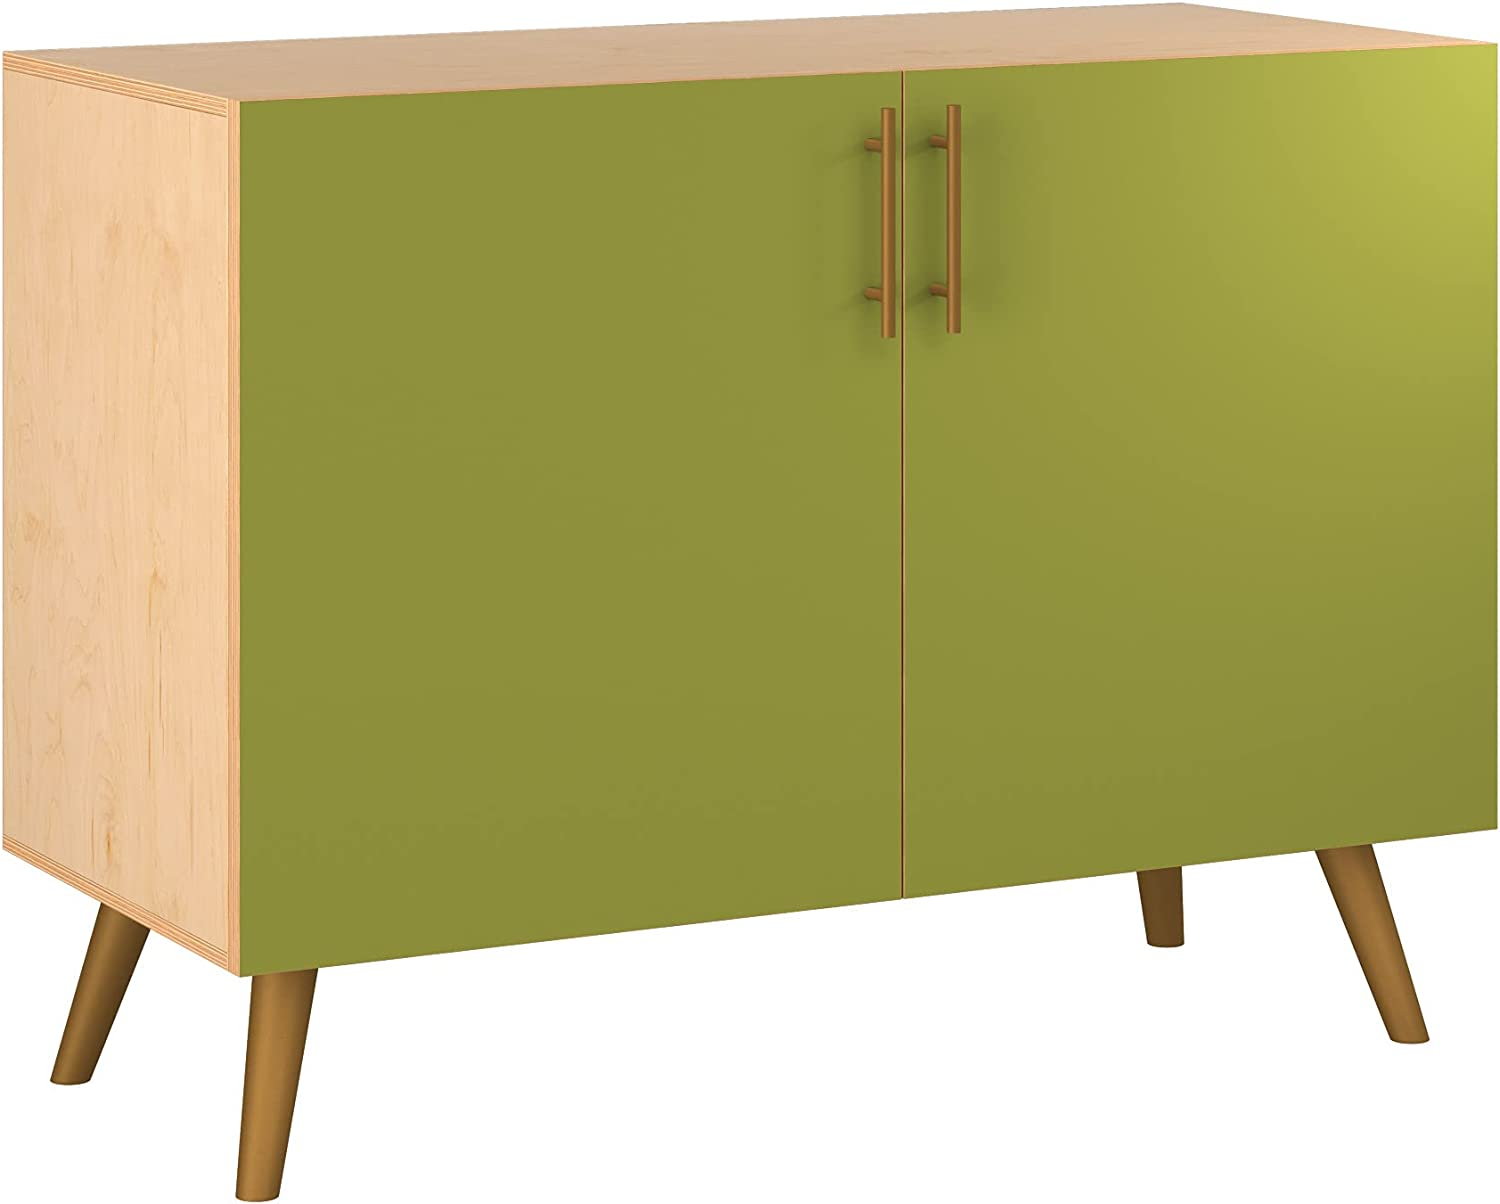 Poppy Credenza Max 65% OFF - Natural NEW before selling ☆ Sadie Design Styl Base in 11 Colors 5